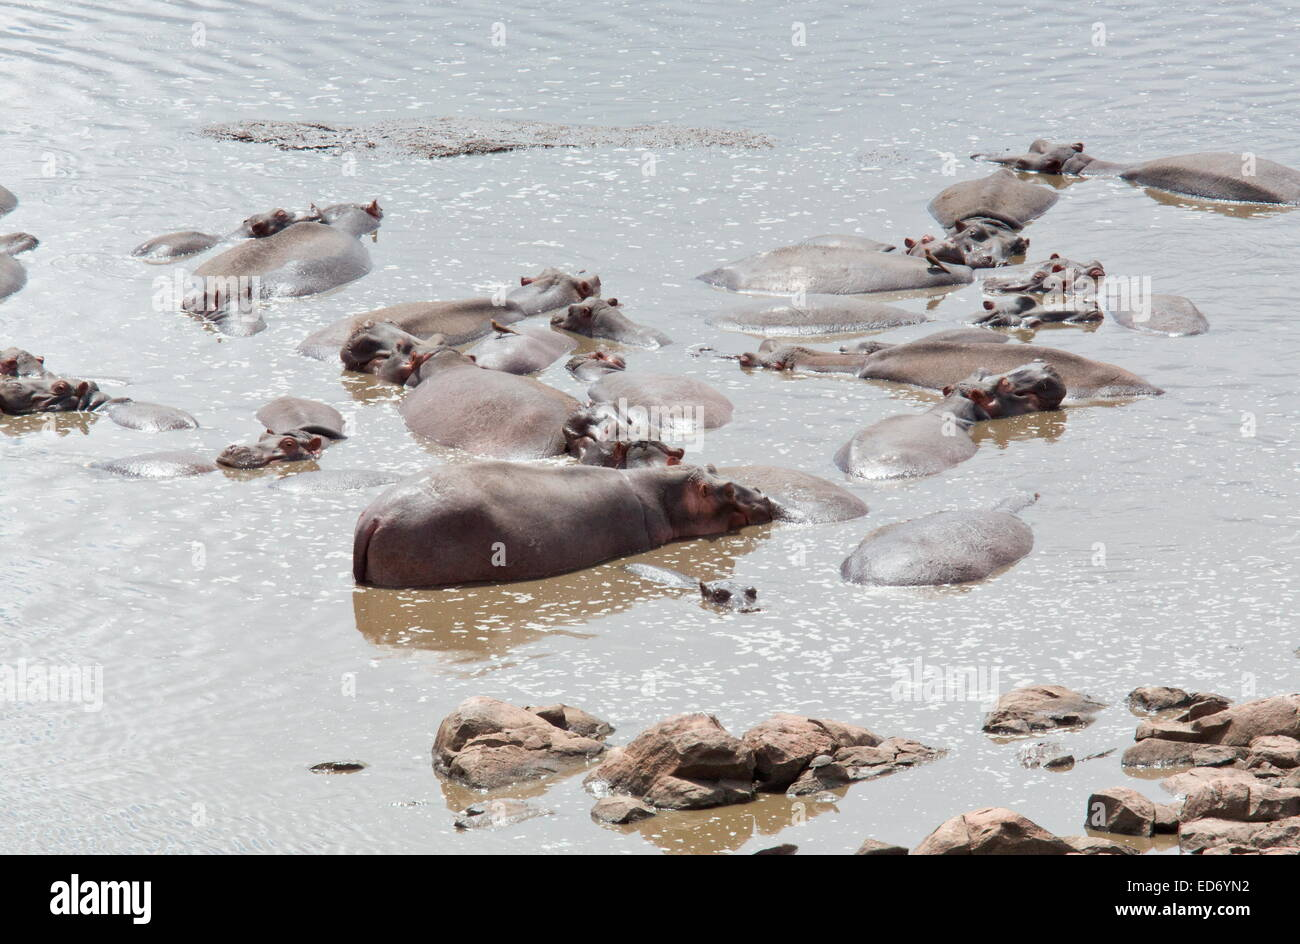 Group of Common hippopotamus, Hippopotamus amphibius, or hippo in a river, Kruger National Park, South Africa Stock Photo